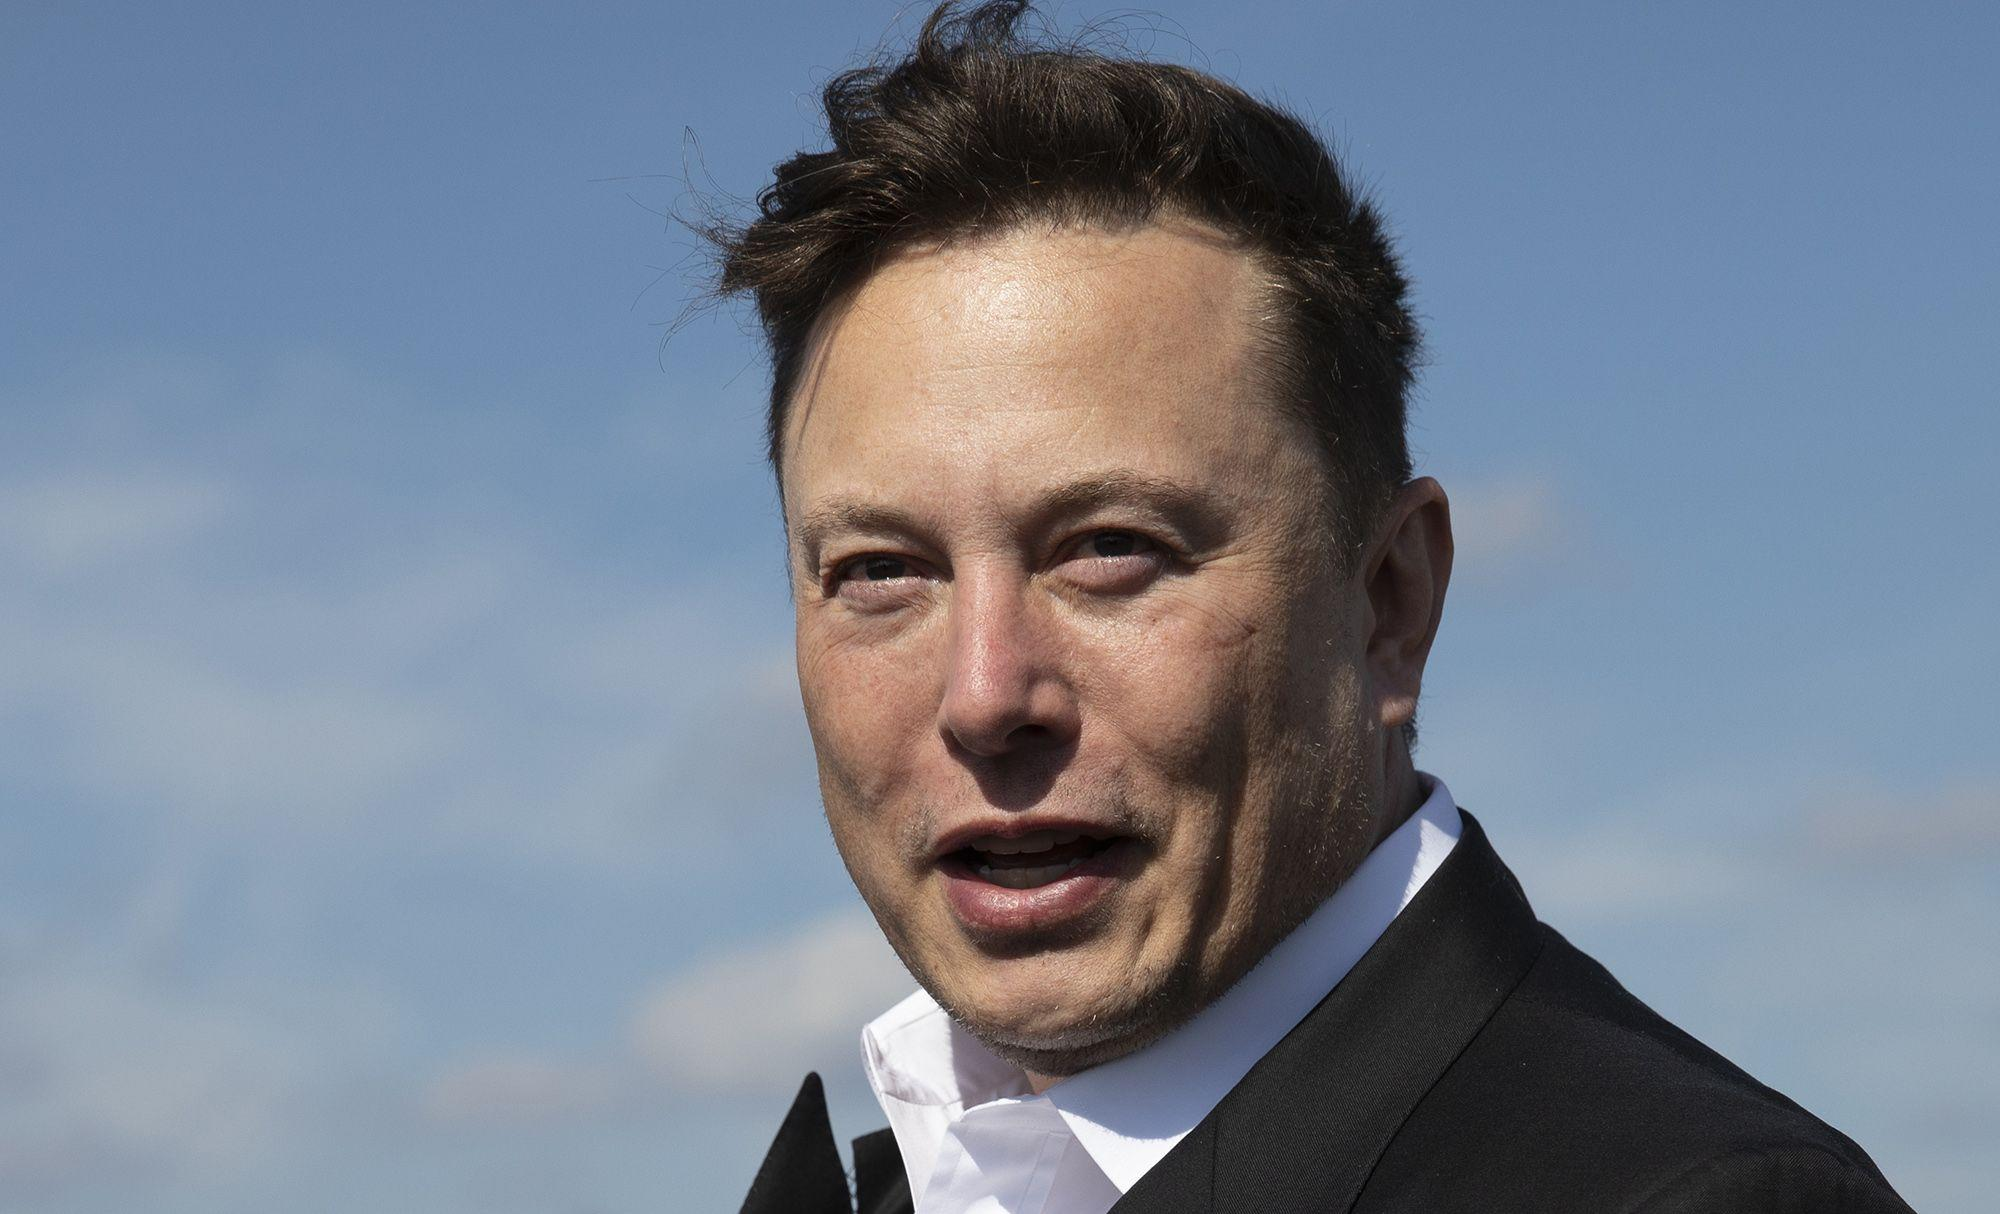 musk-says-tesla-to-use-bitcoin-transactions-when-mining-cleaner